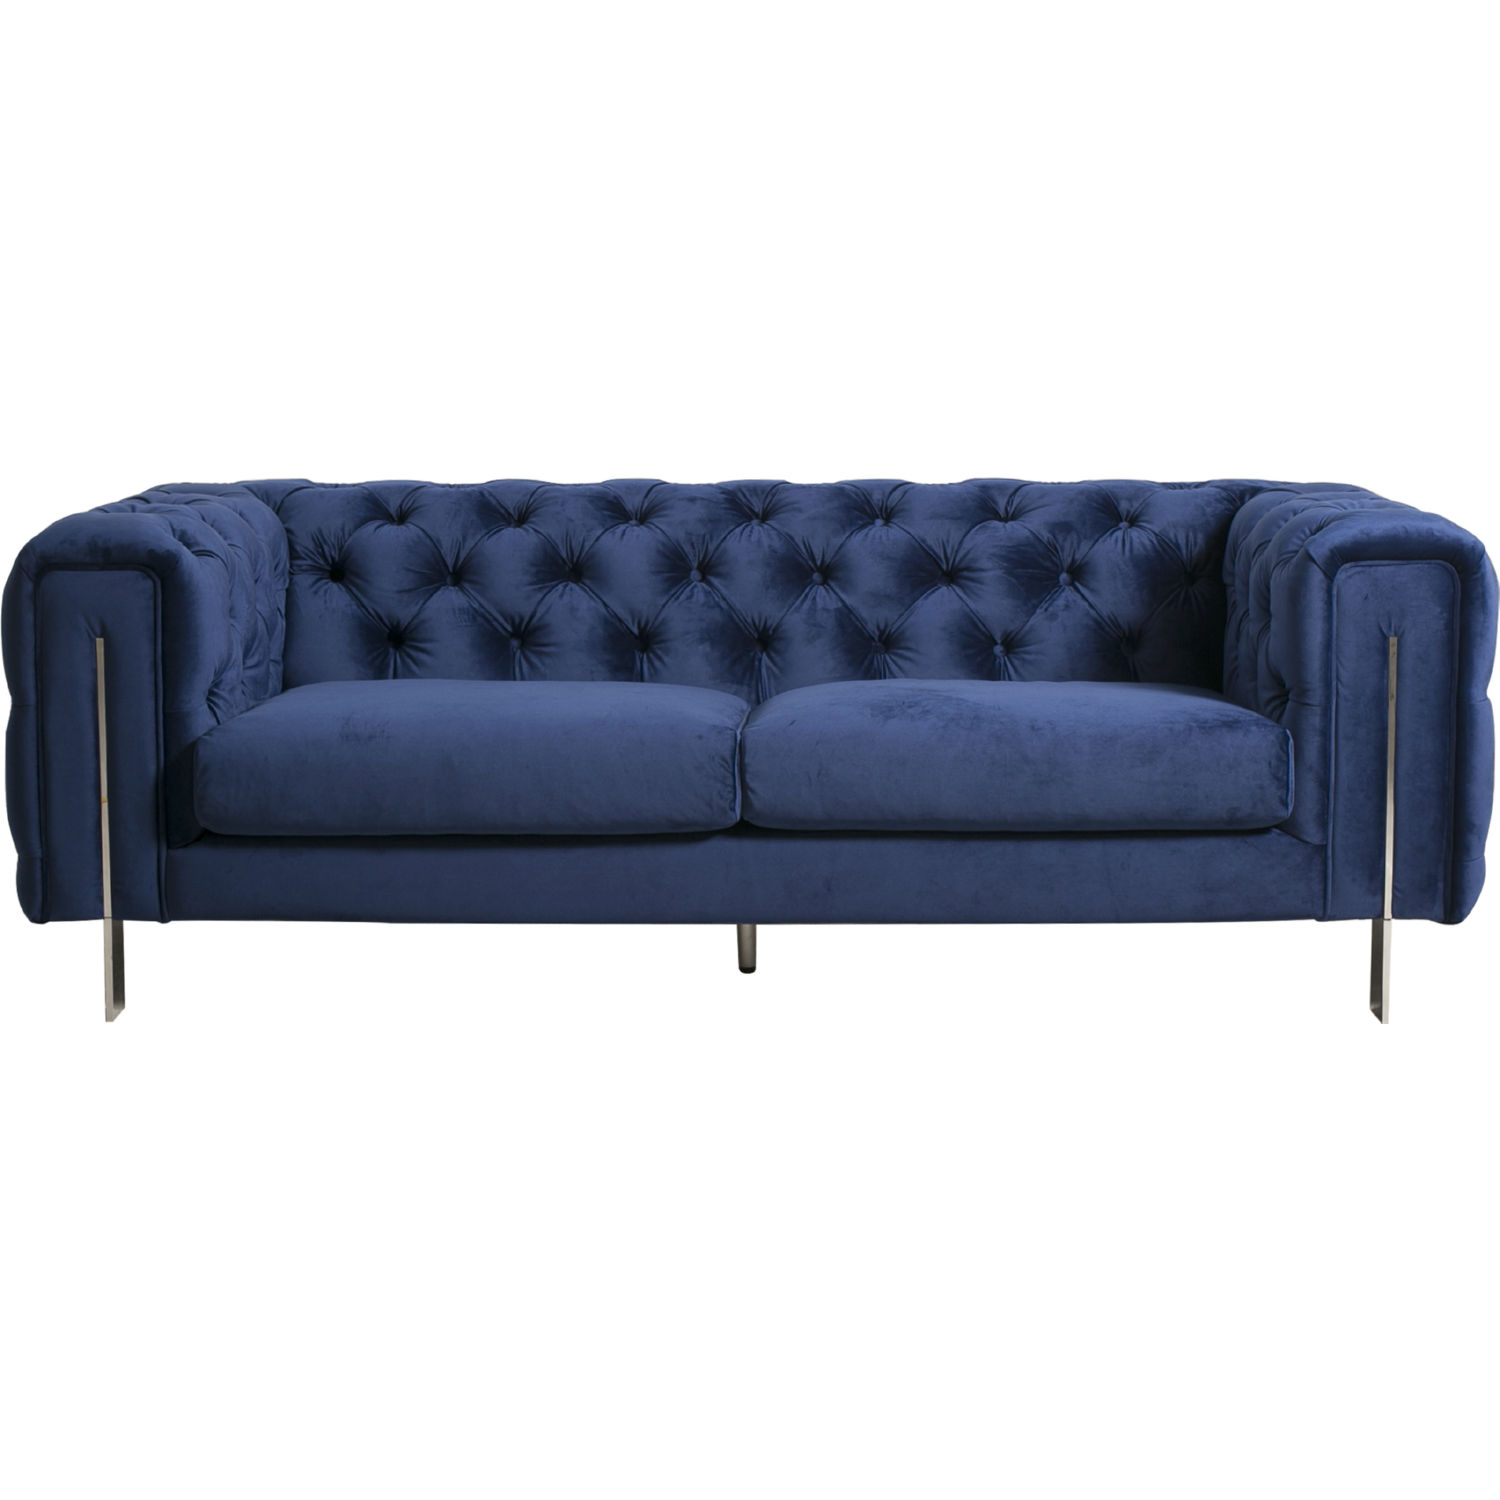 Moe s Home Collection AD 1061 26 Courtney 2 Seat Sofa in Tufted